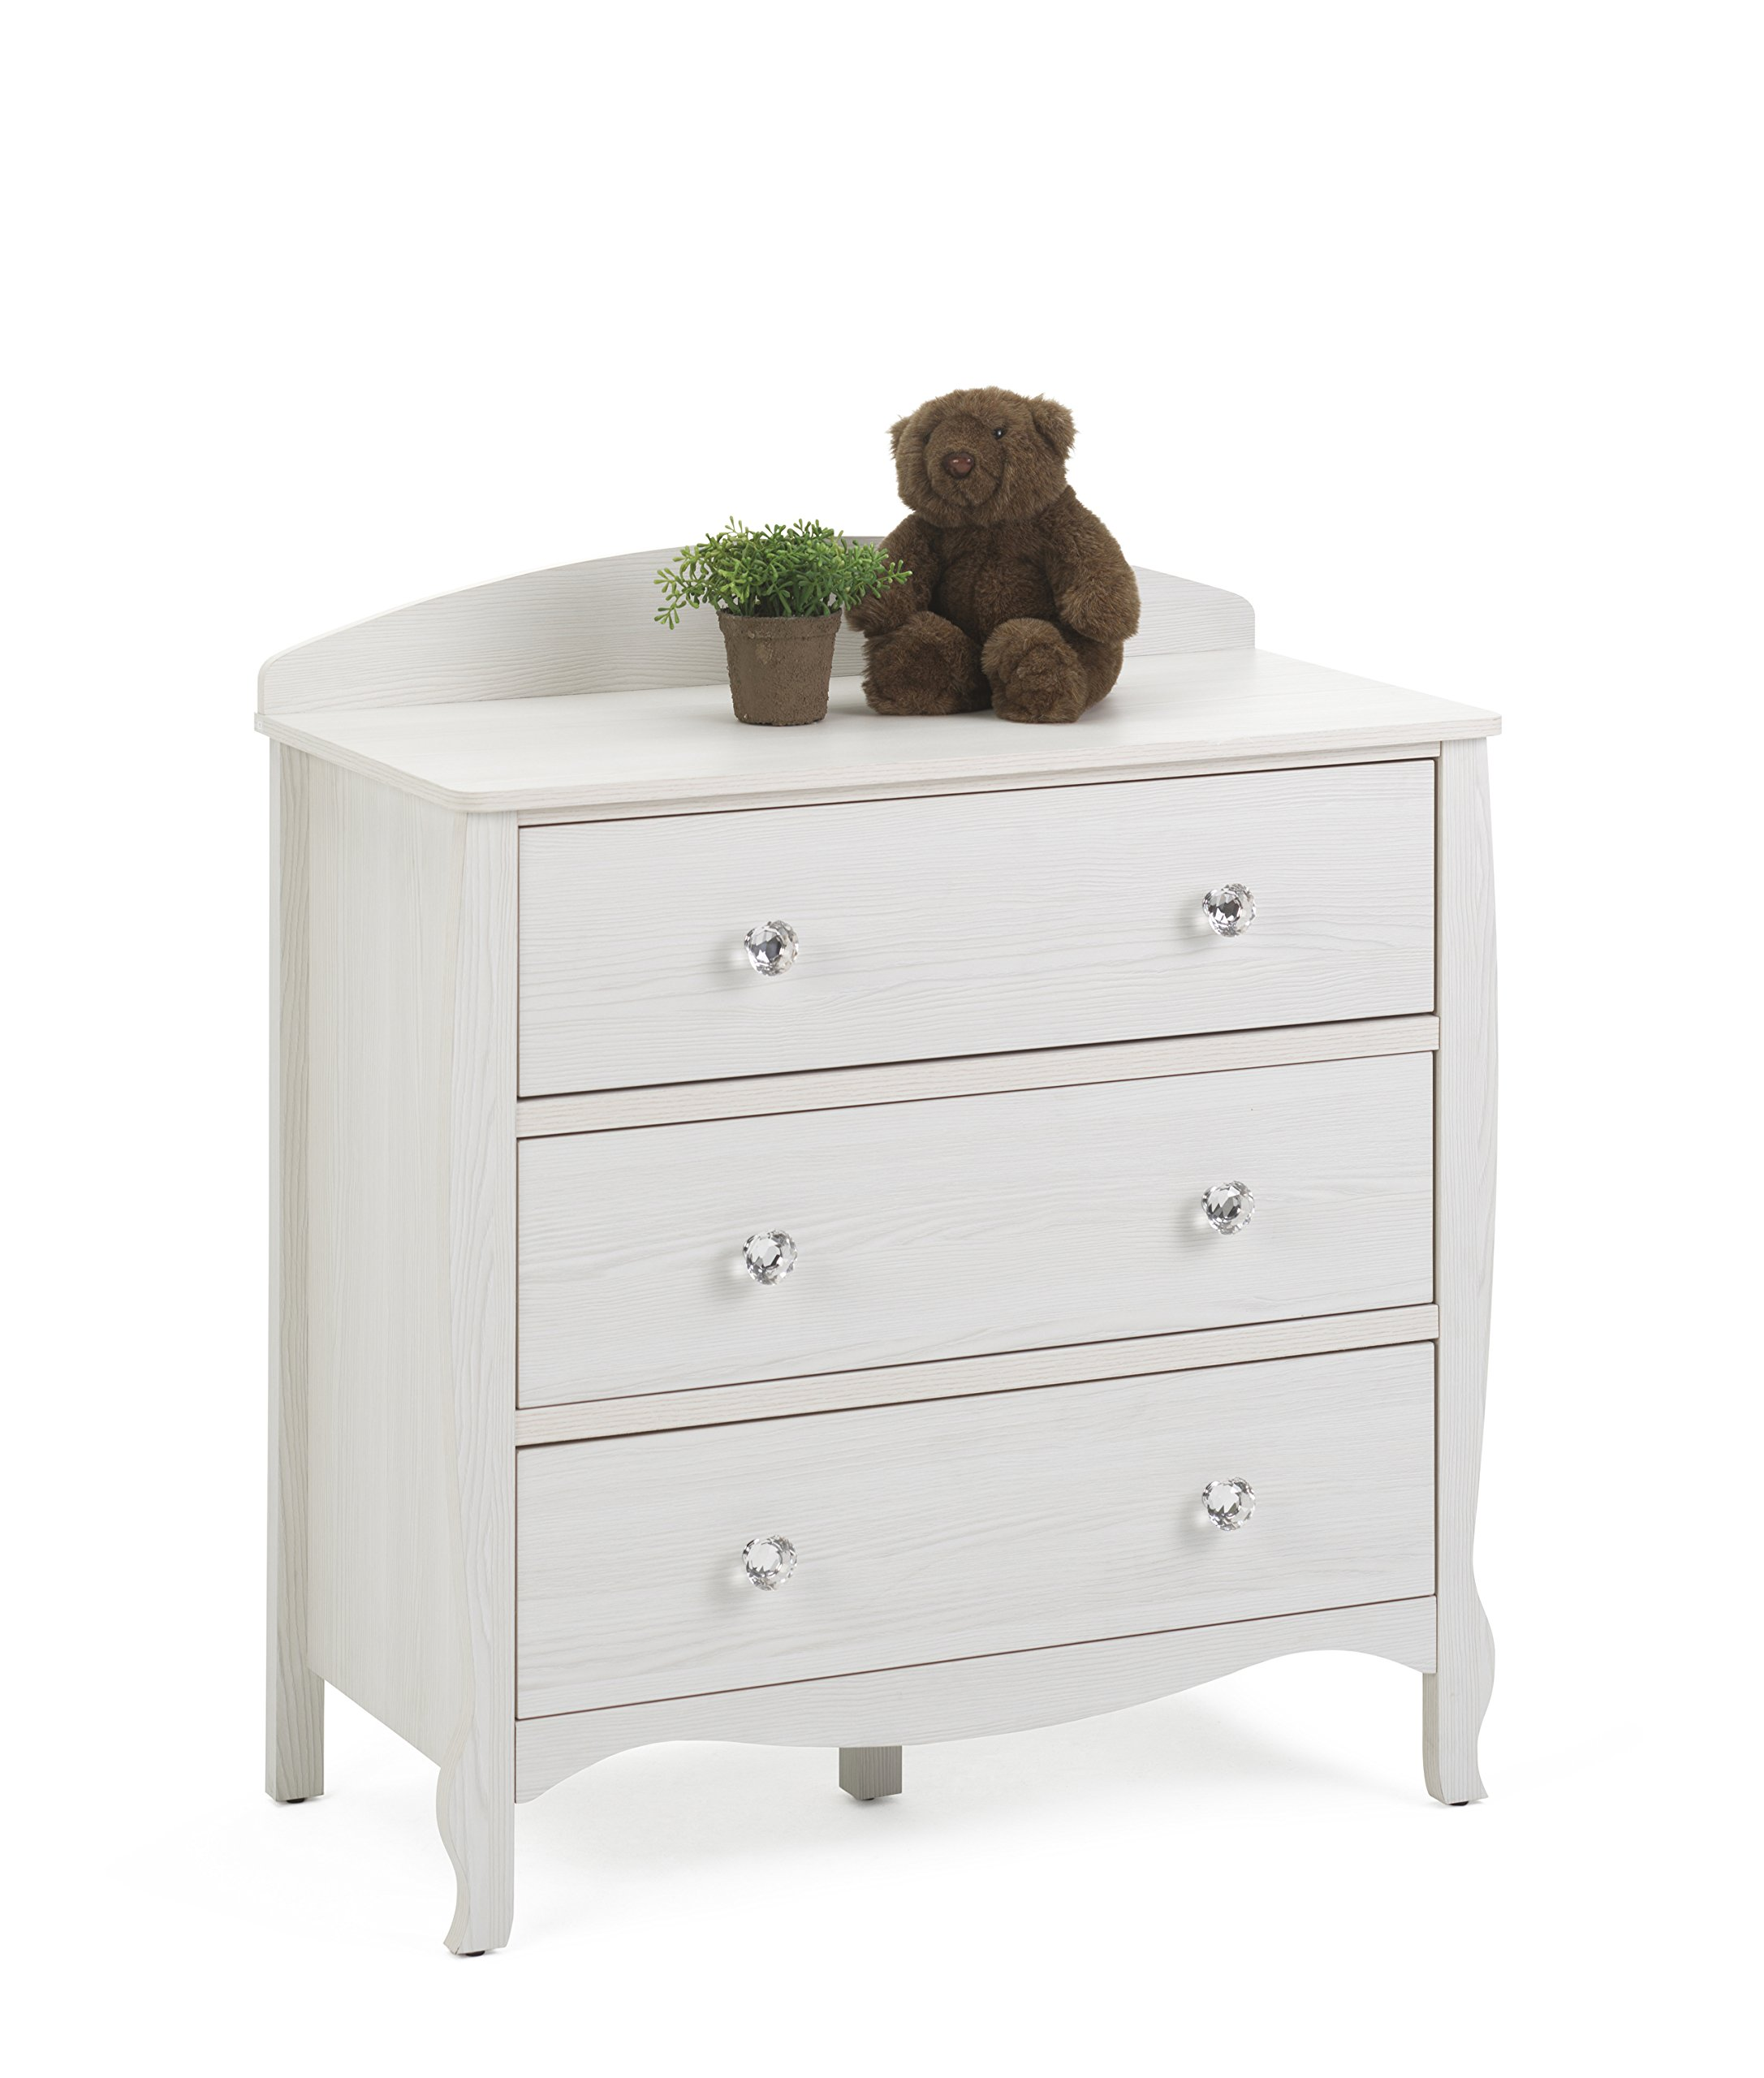 4D Concepts Lindsay 3 Drawer Chest in Stone White Oak